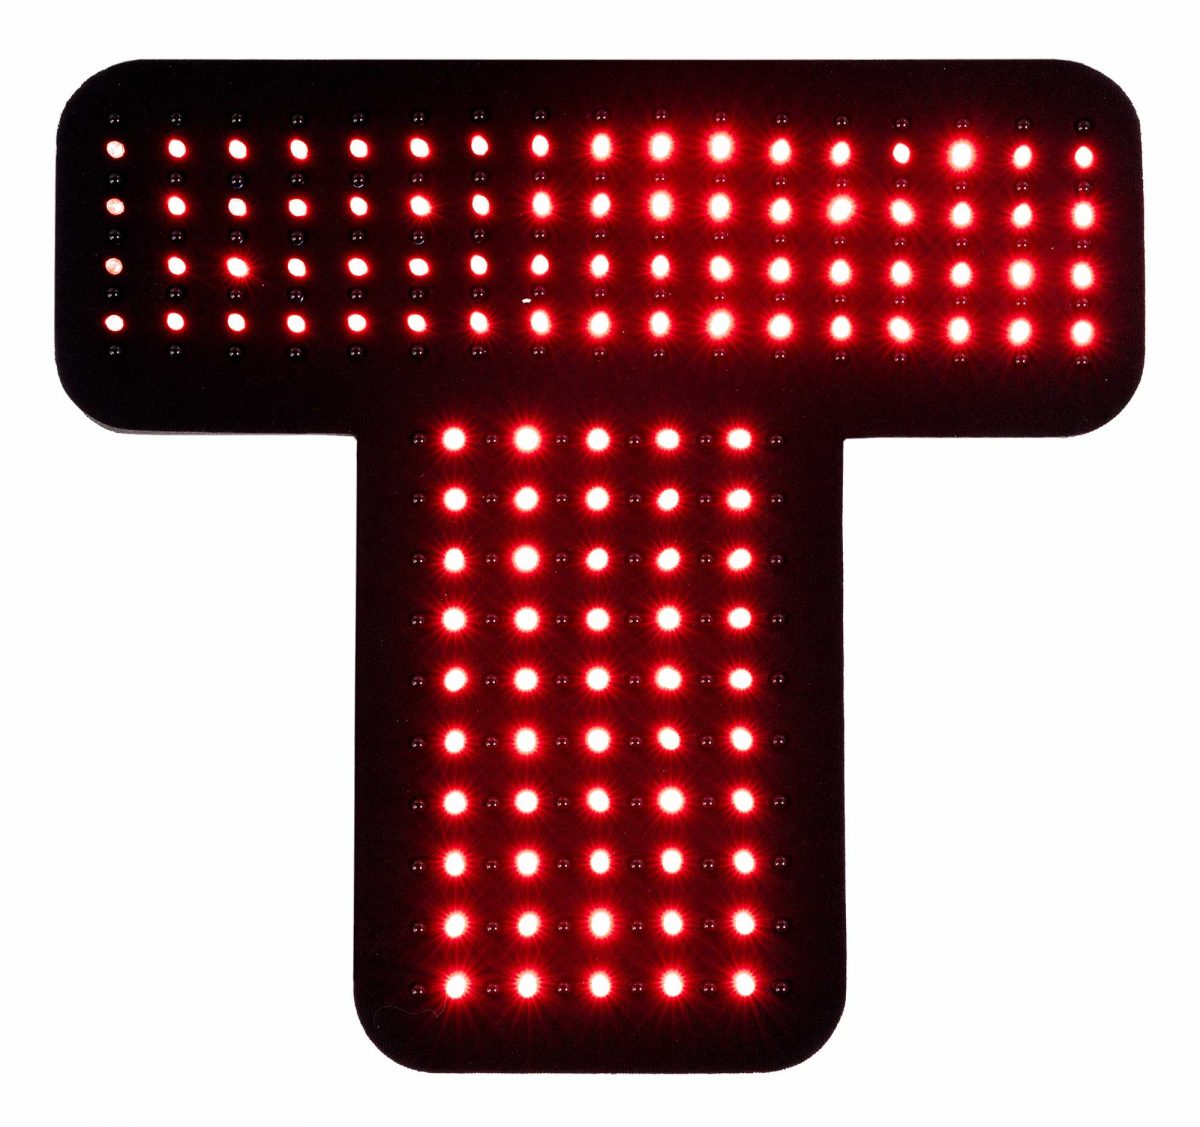 Inlight Therapy Inc LED light therapy pad T-263 in red